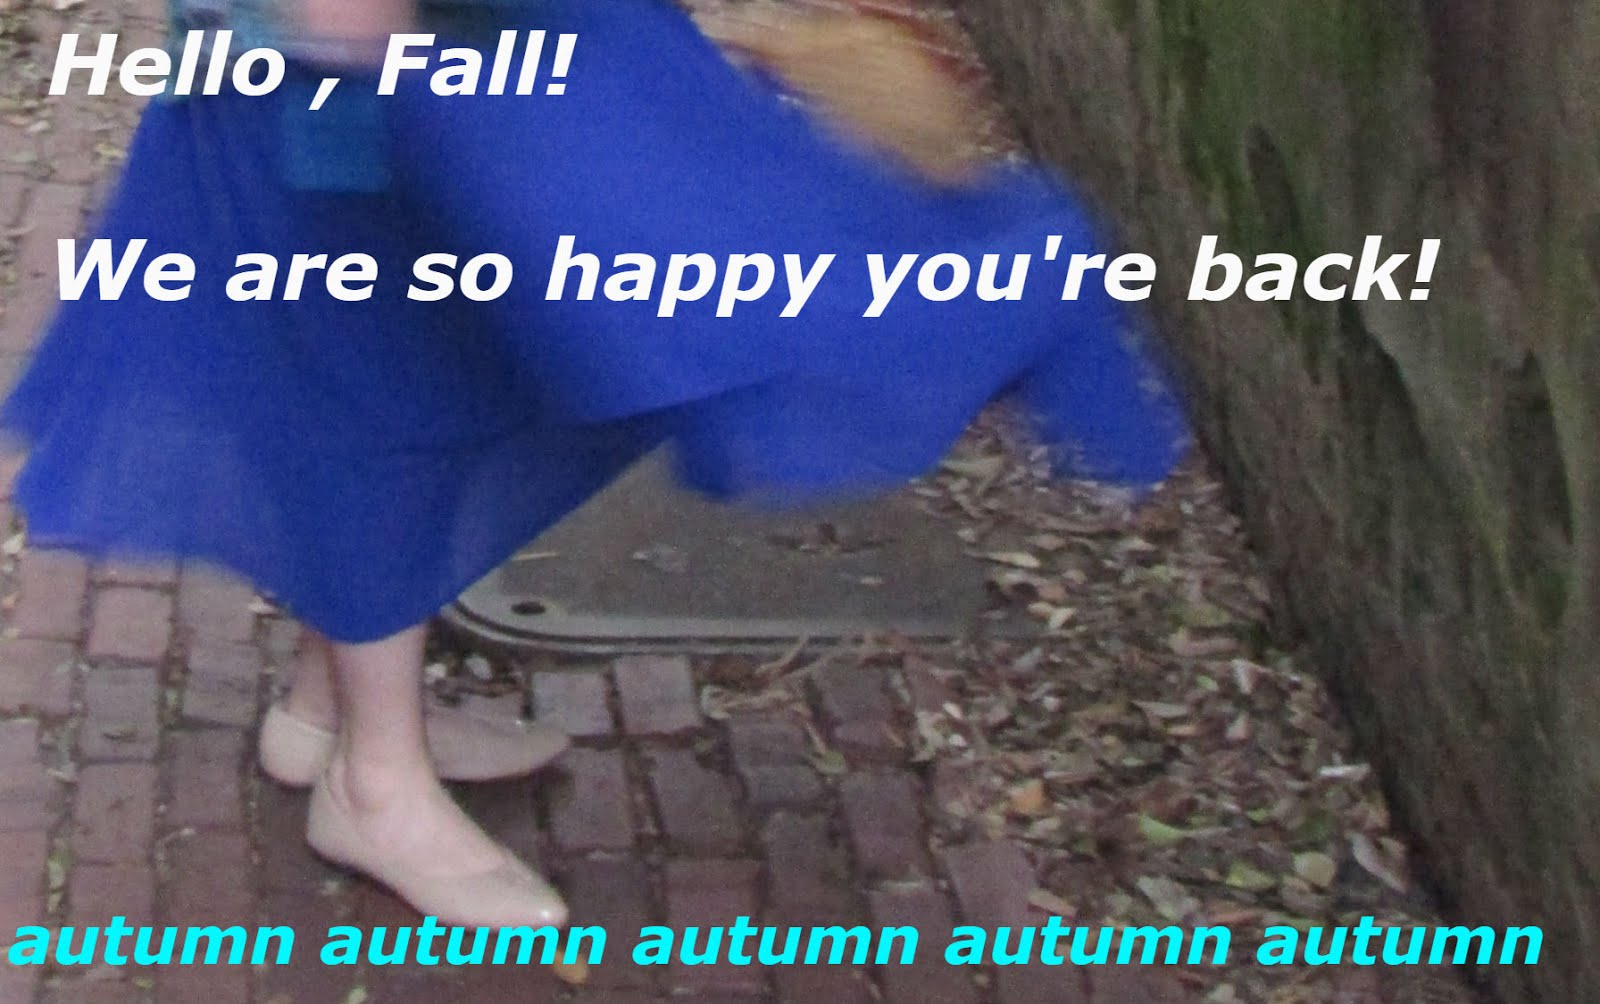 Good bye Summer, we greet you, Fall!